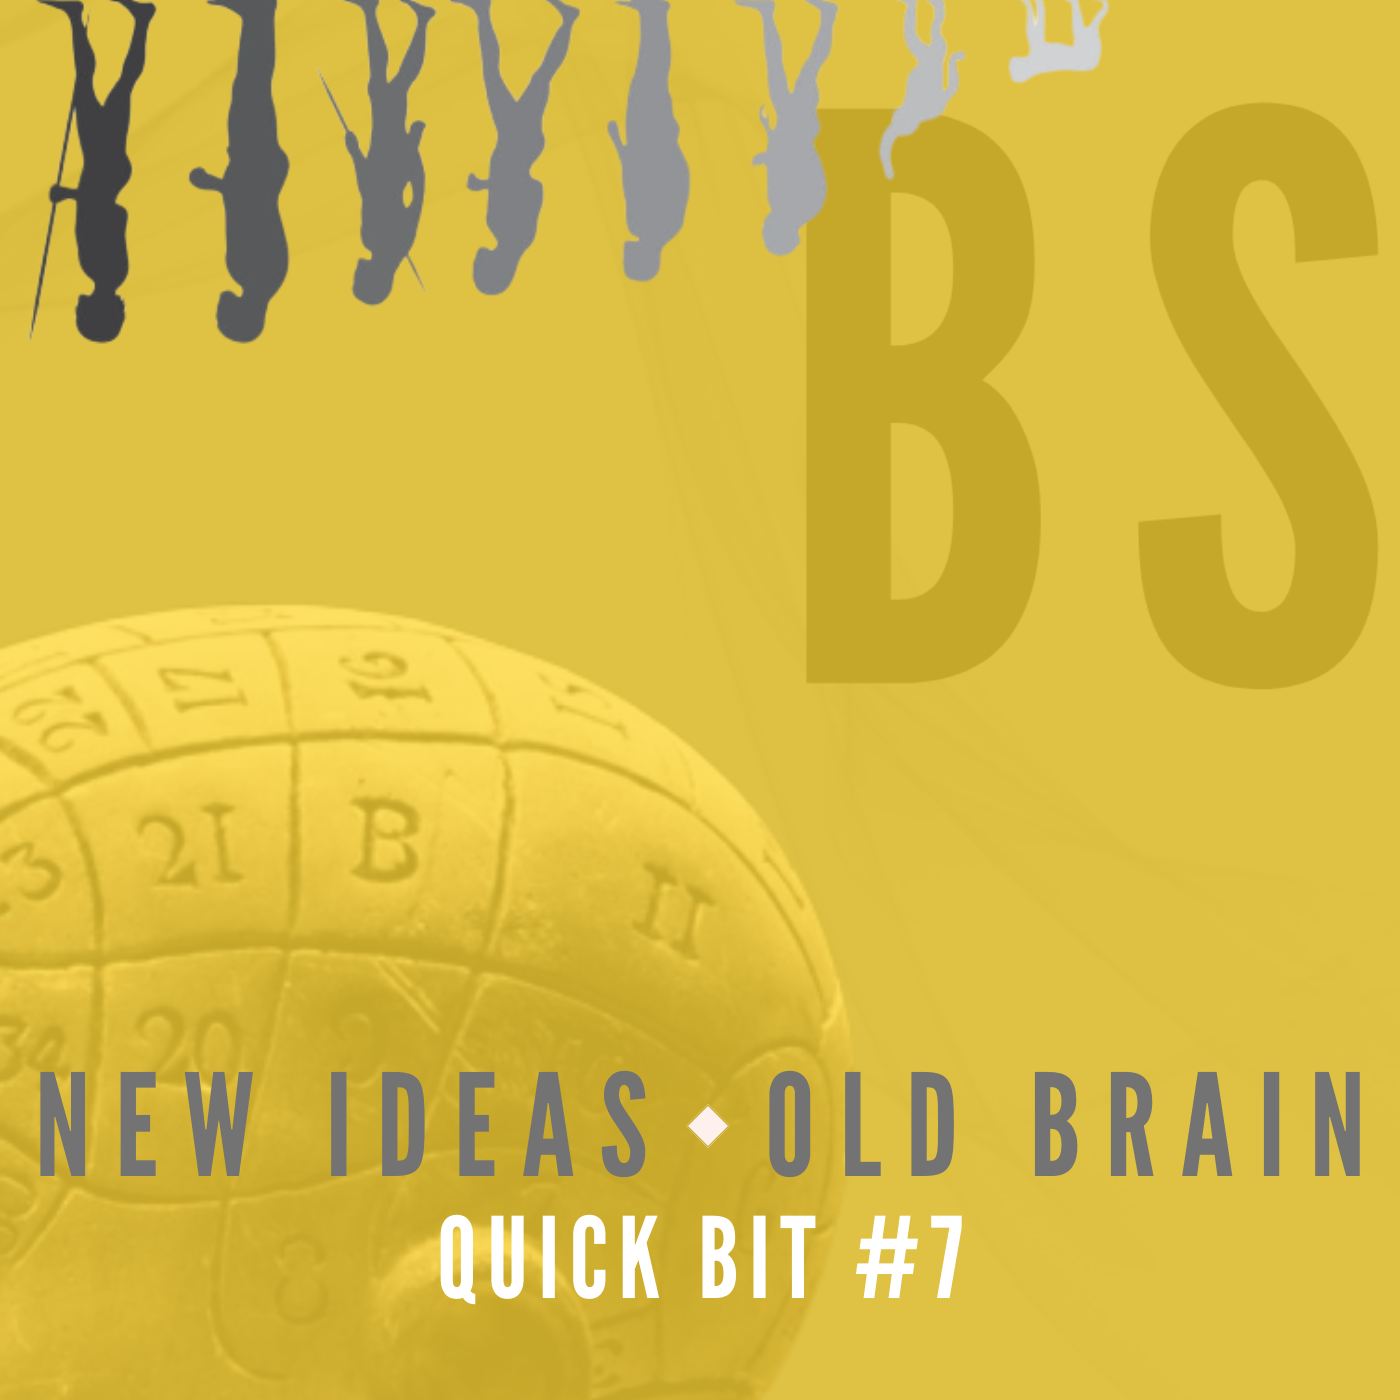 New Ideas, Old Brain Quick Bit #7: The Spread of Fake News